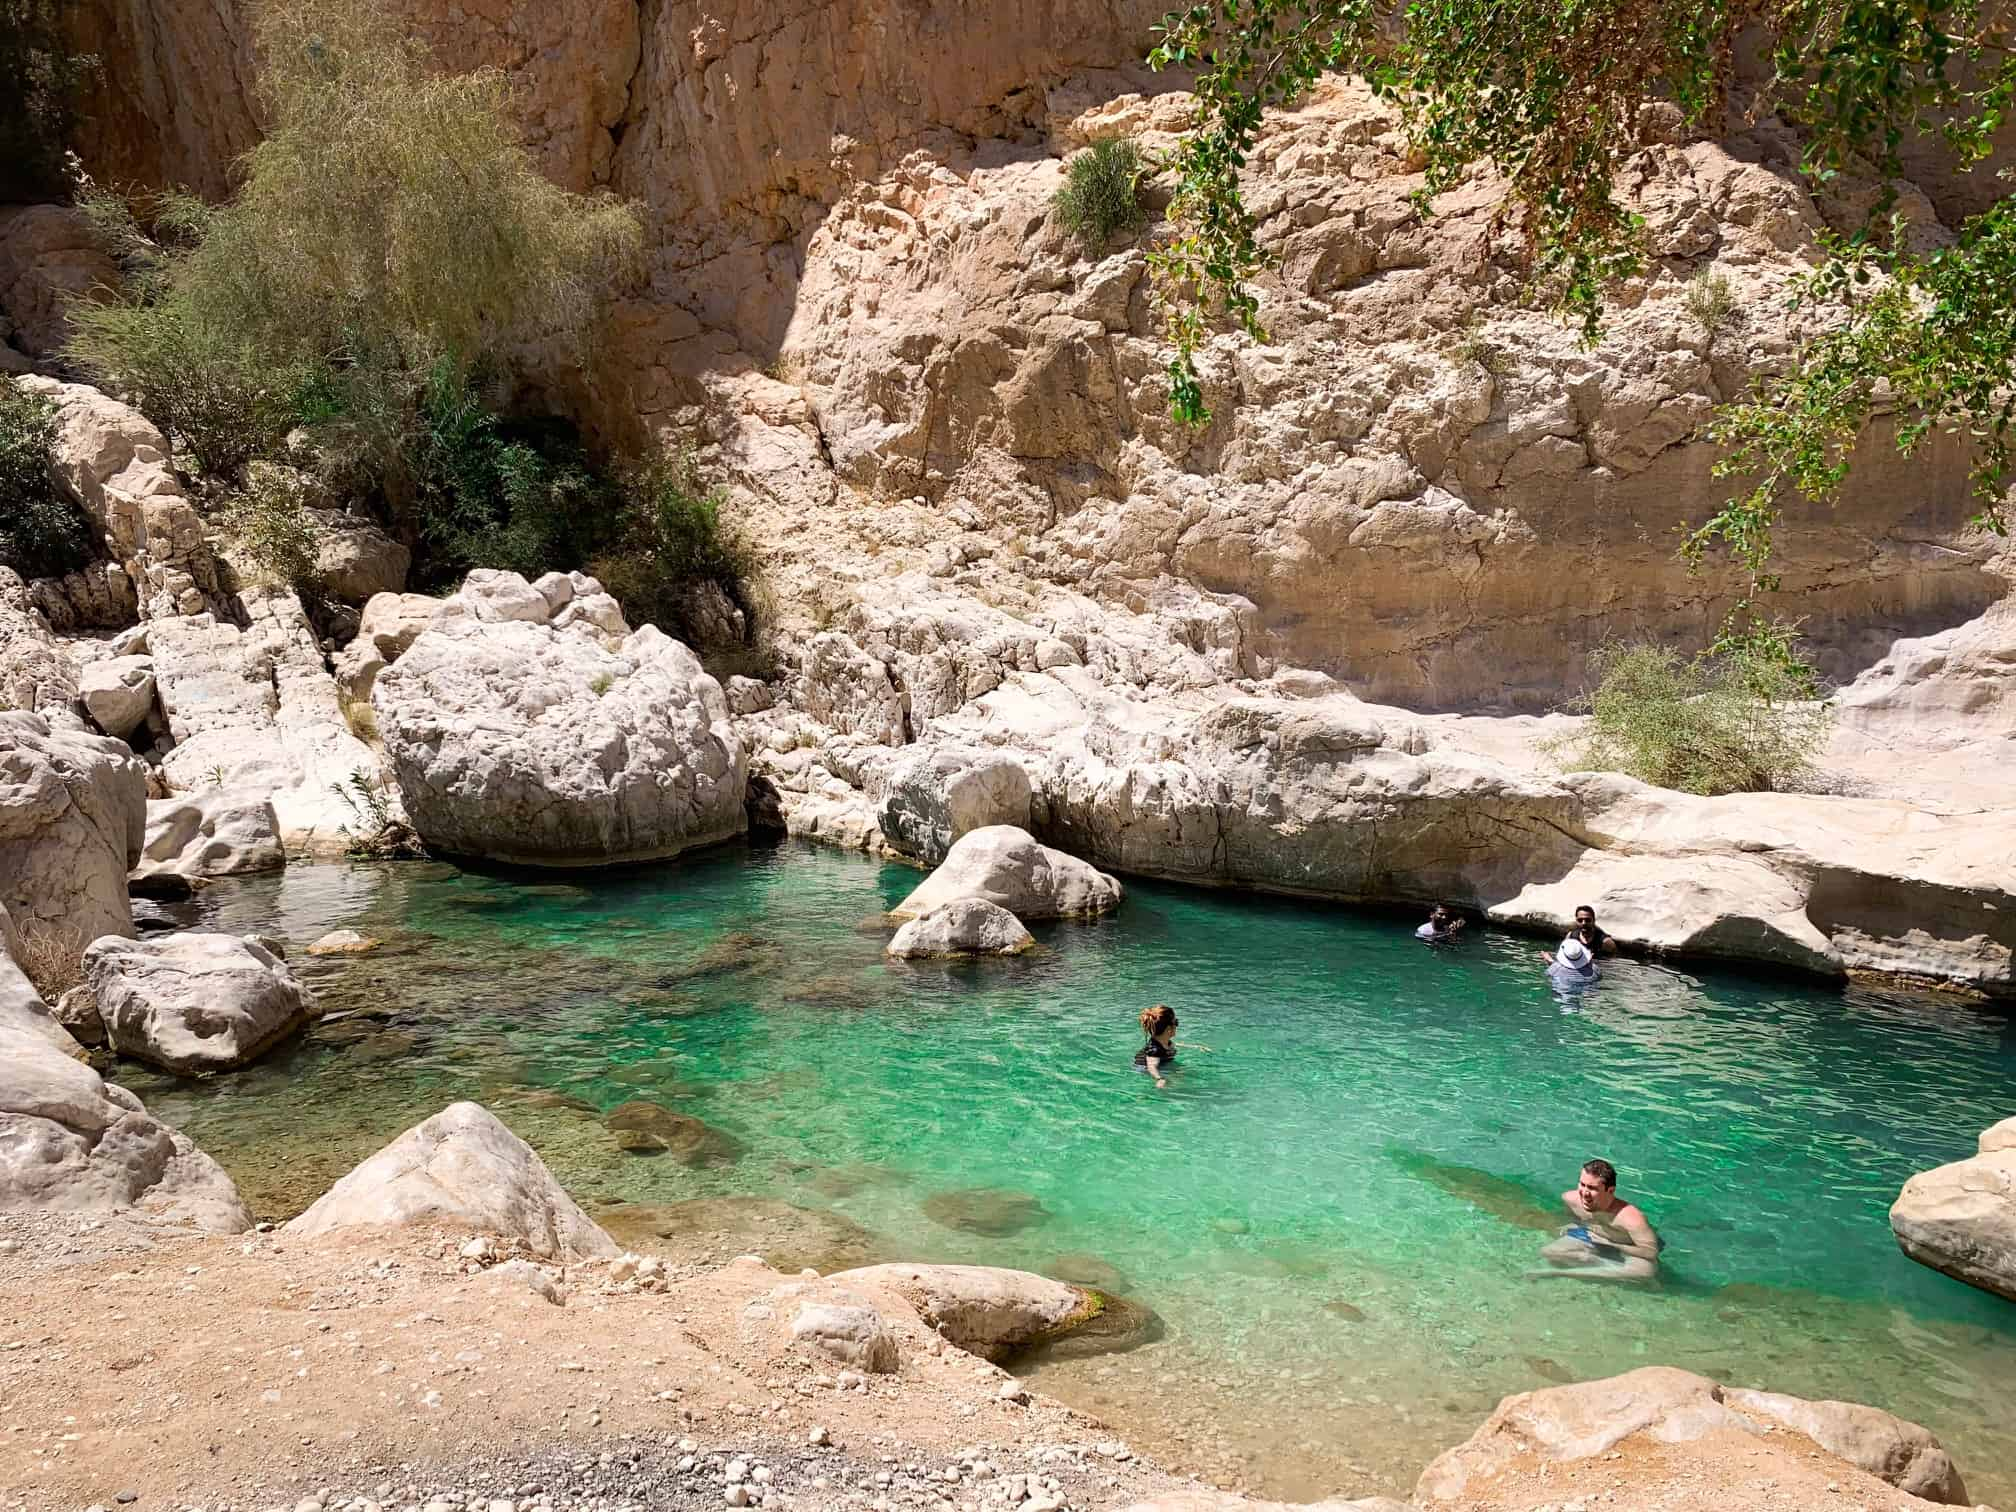 small beach area at Wadi Bani Khalid in Oman